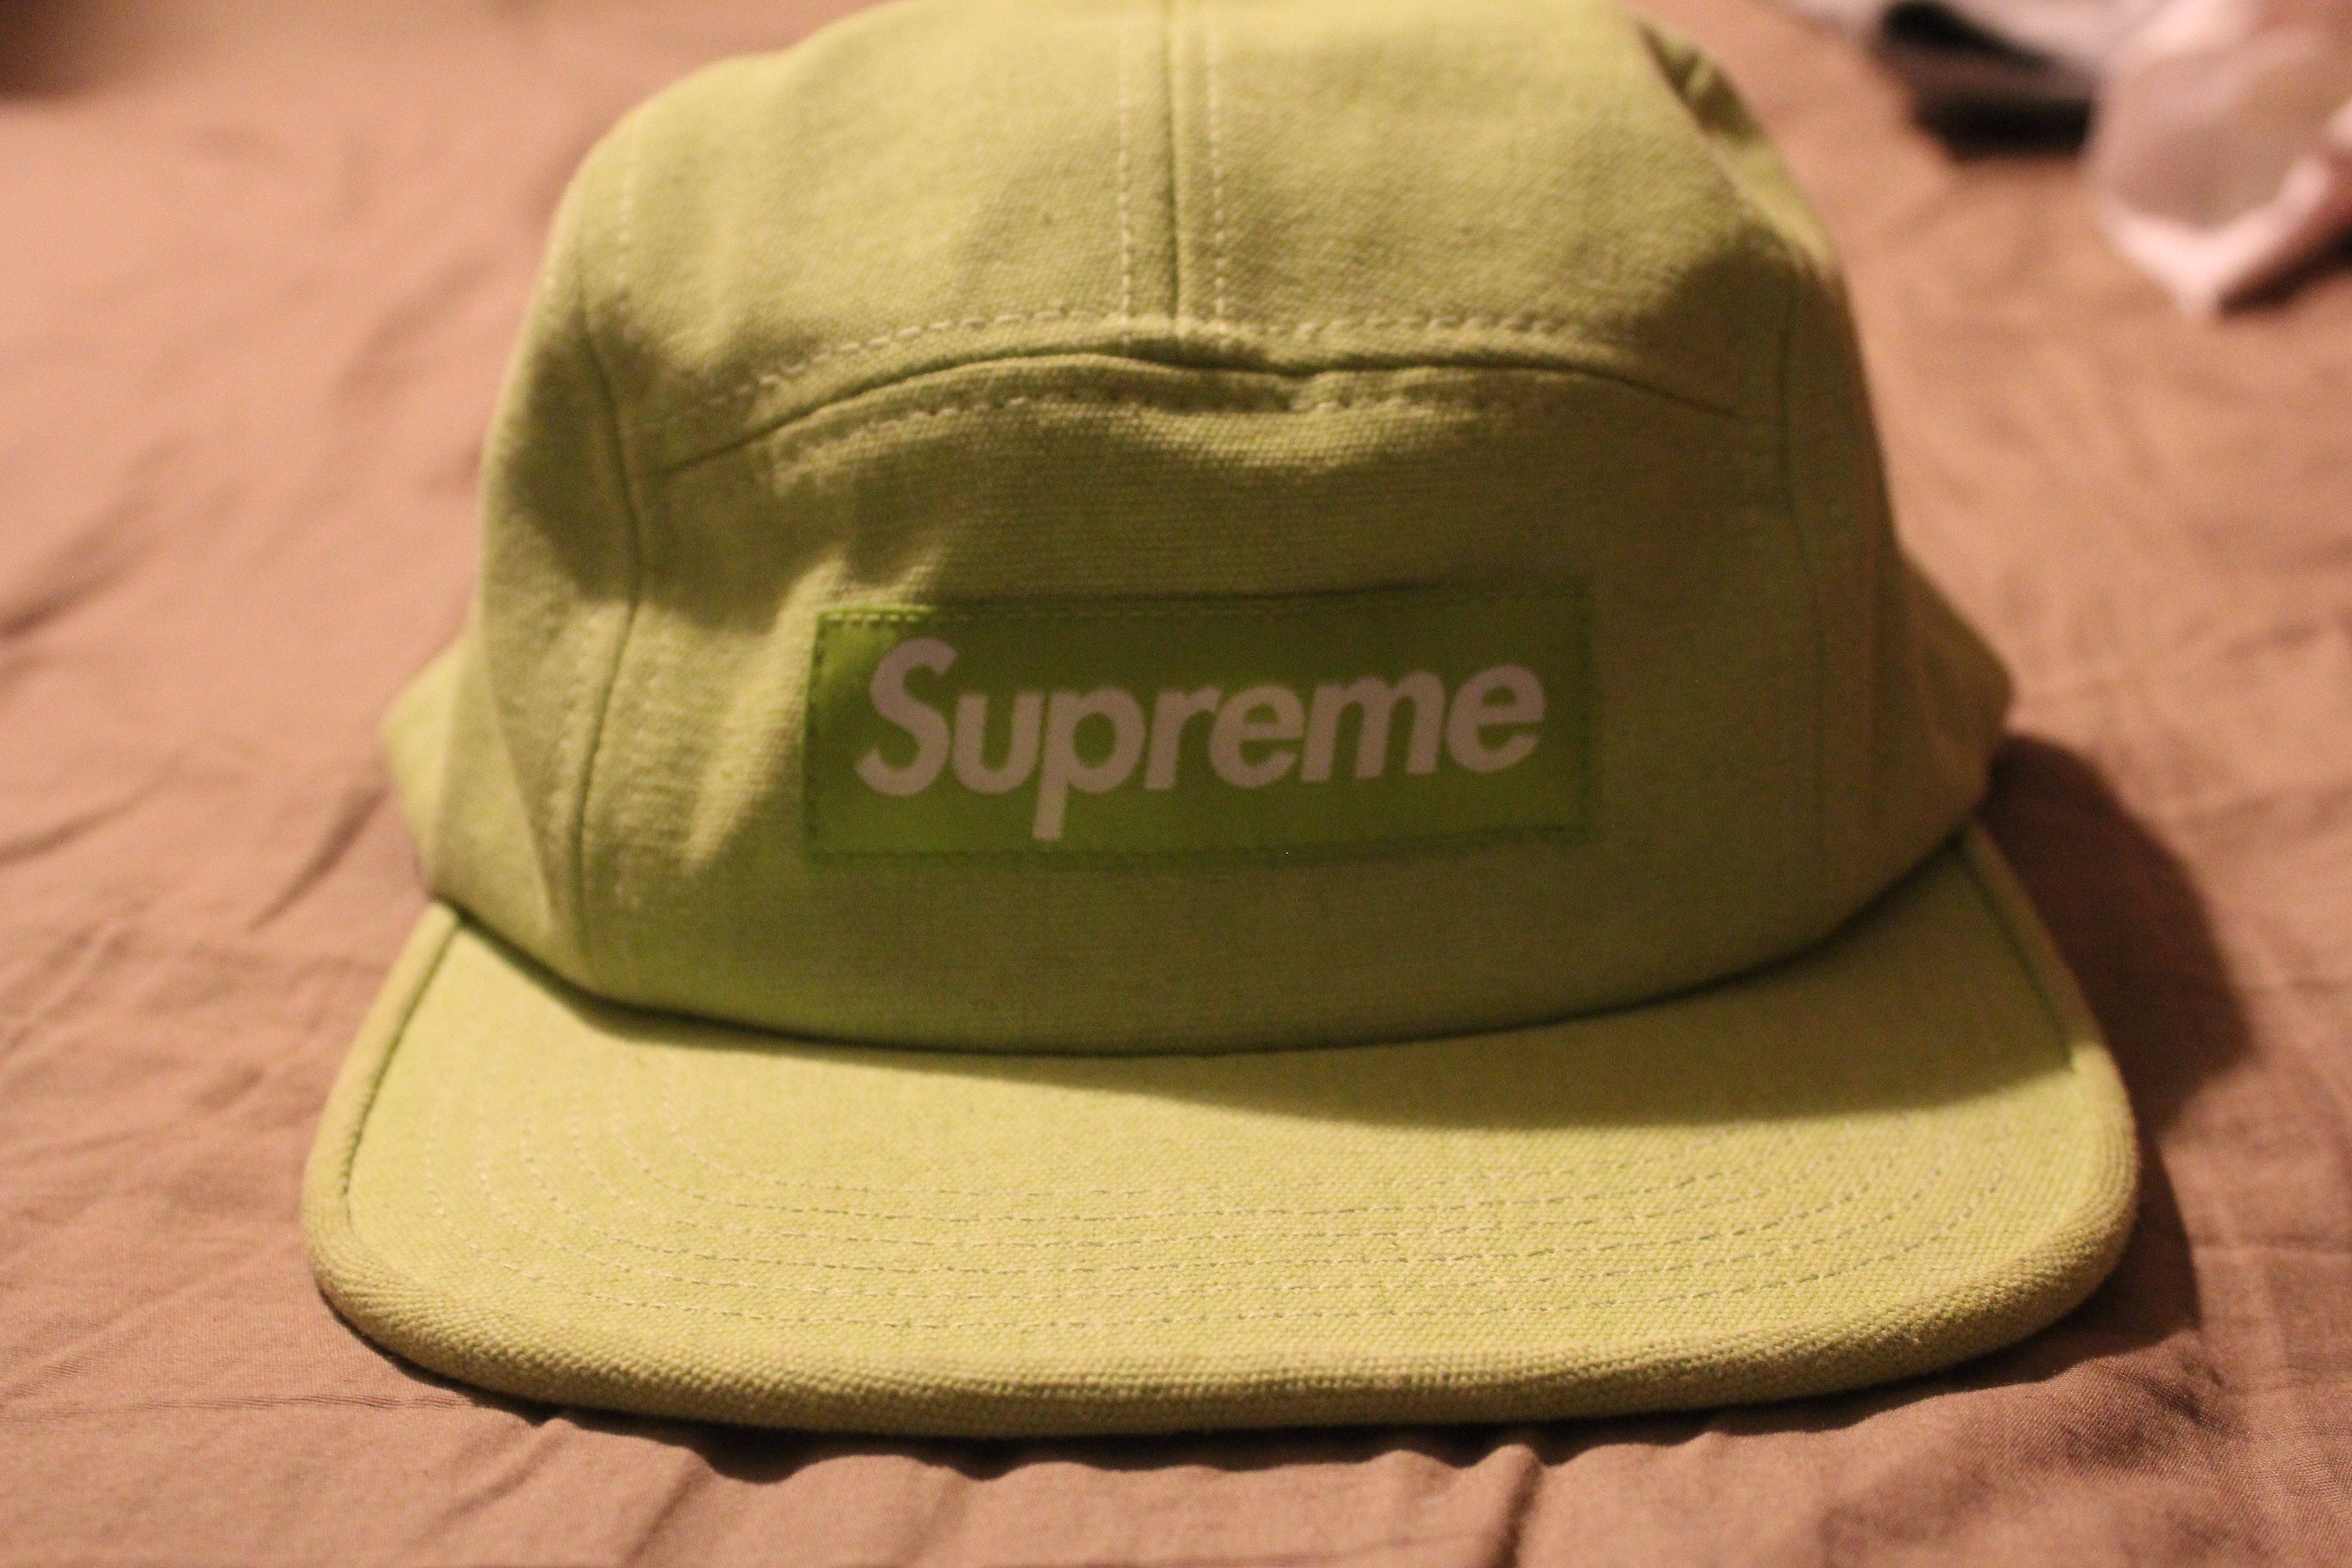 648df8304ec Supreme Supreme Stone Washed Canvas Camp Cap S S15 (Green) Size one size -  Hats for Sale - Grailed